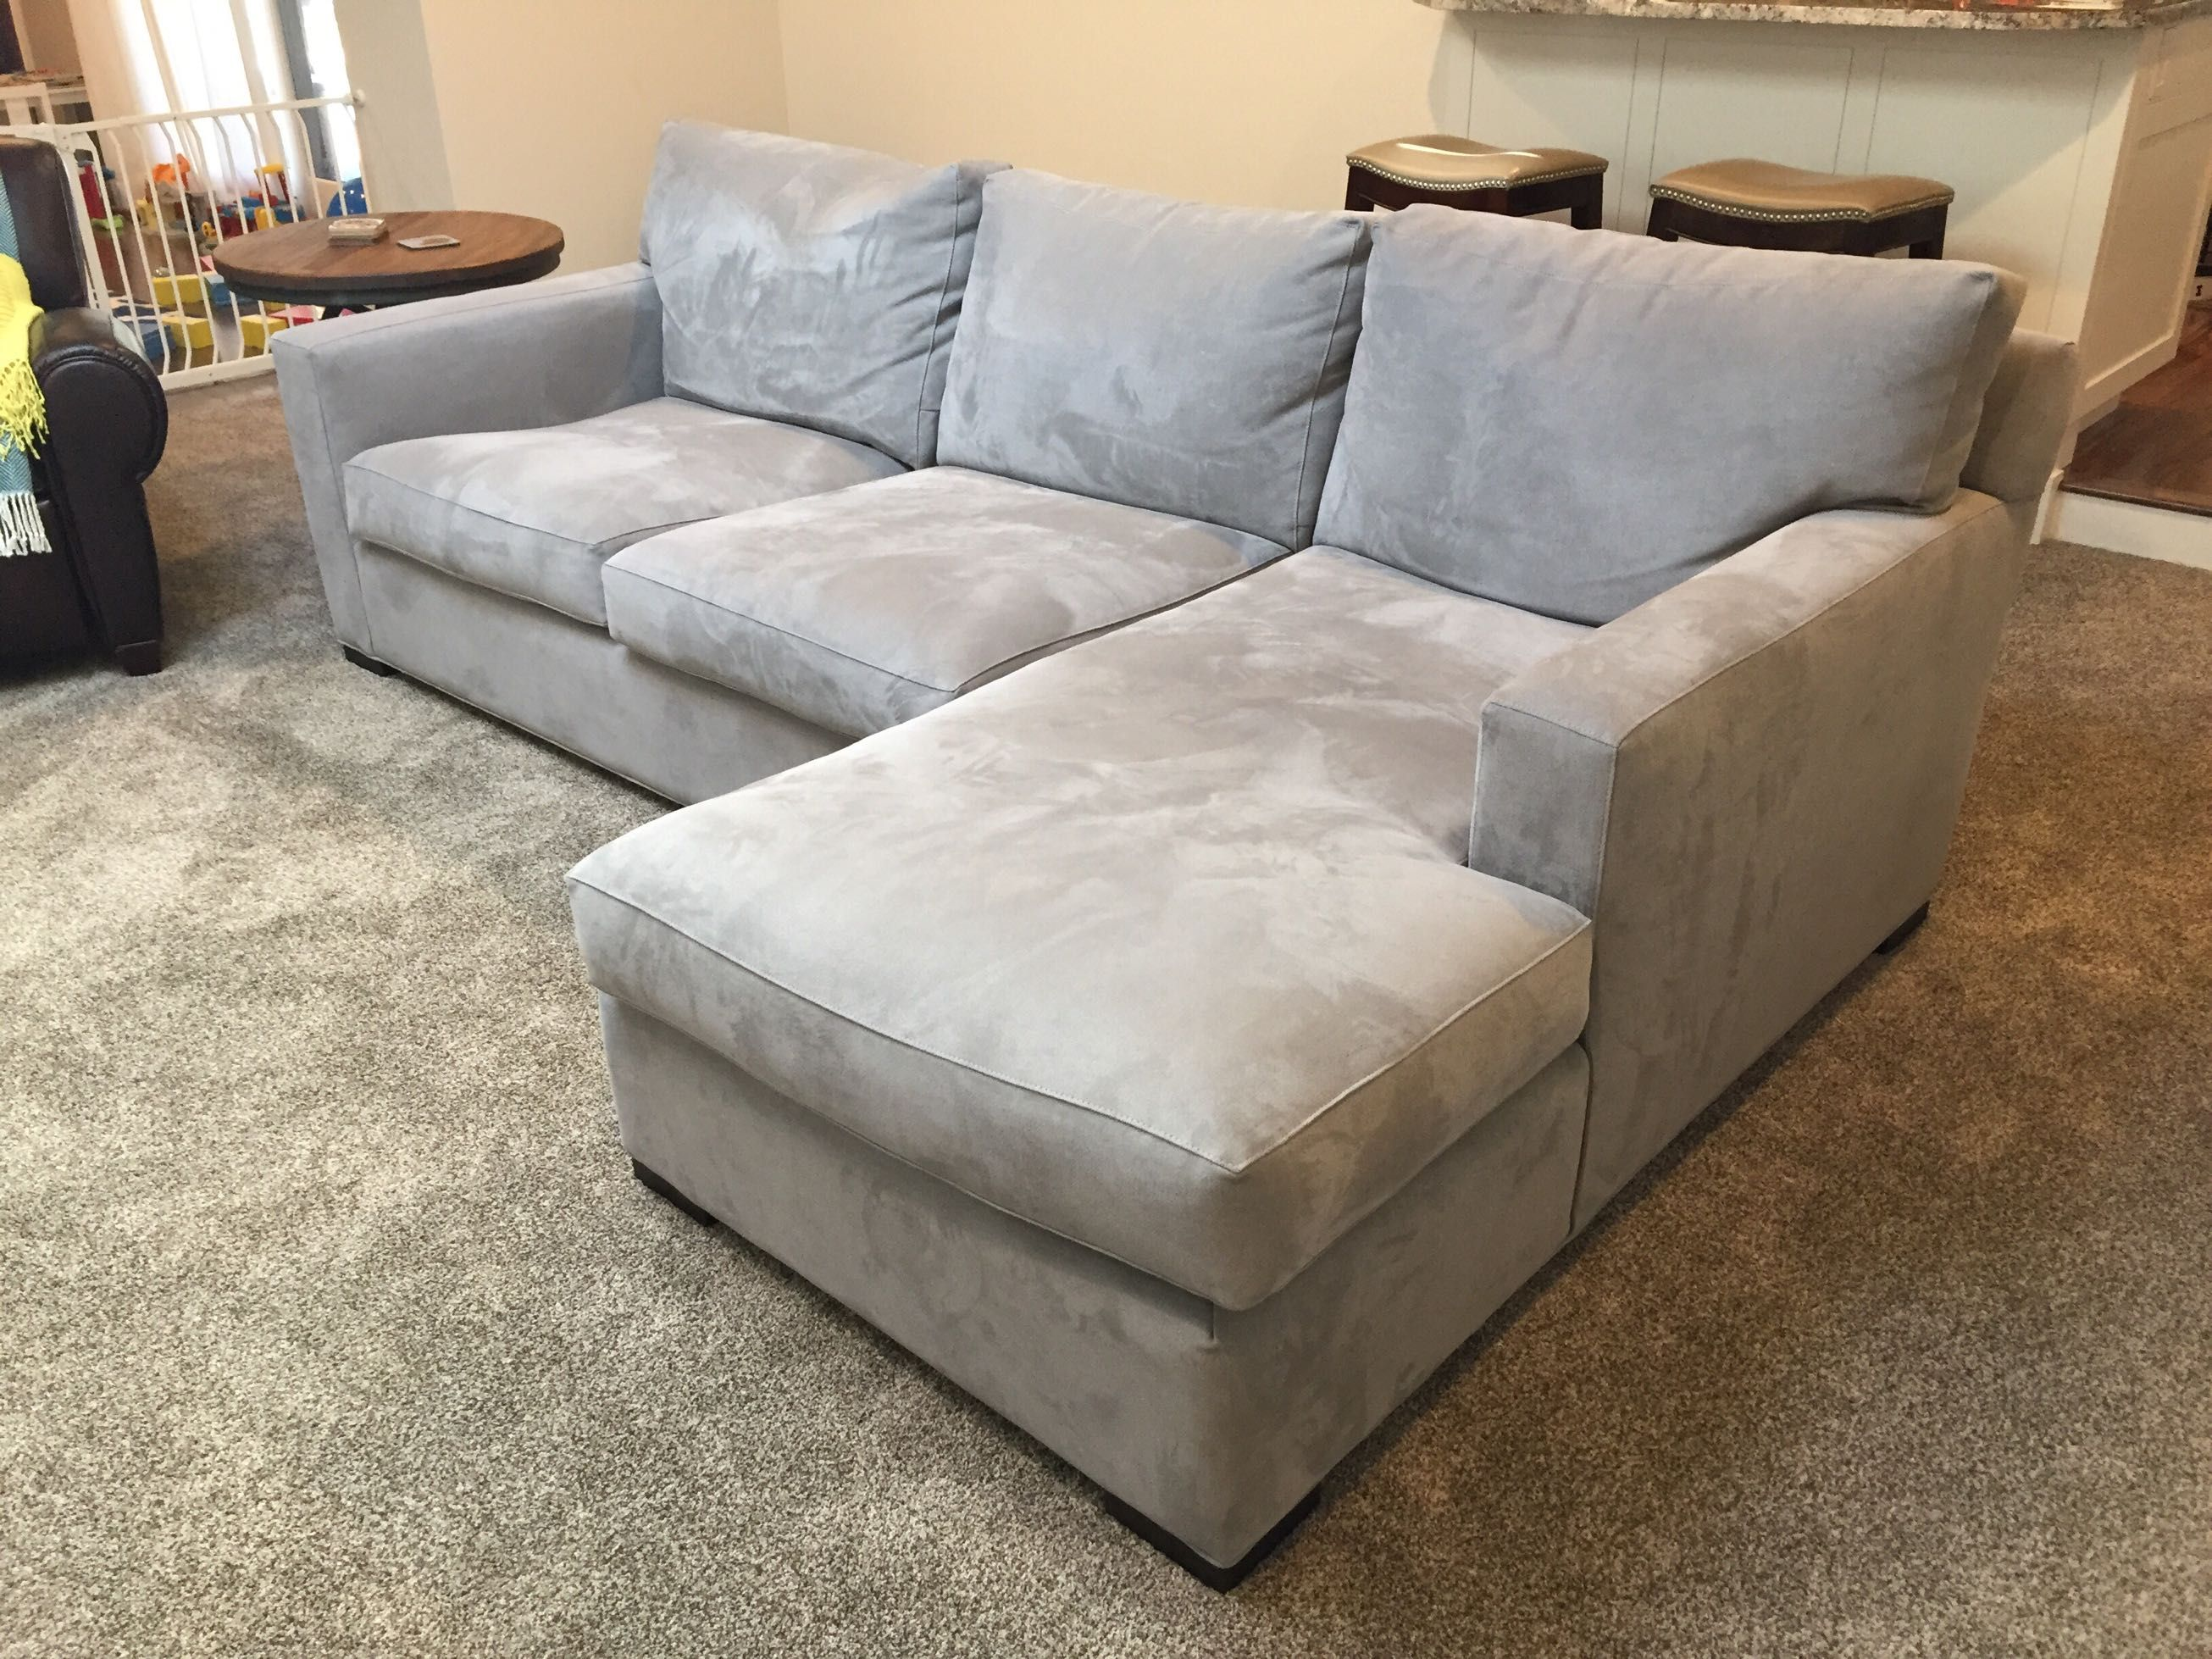 Crate Barrel Axis Ii 2 Piece Sectional Sofa In Nickel Paid Full